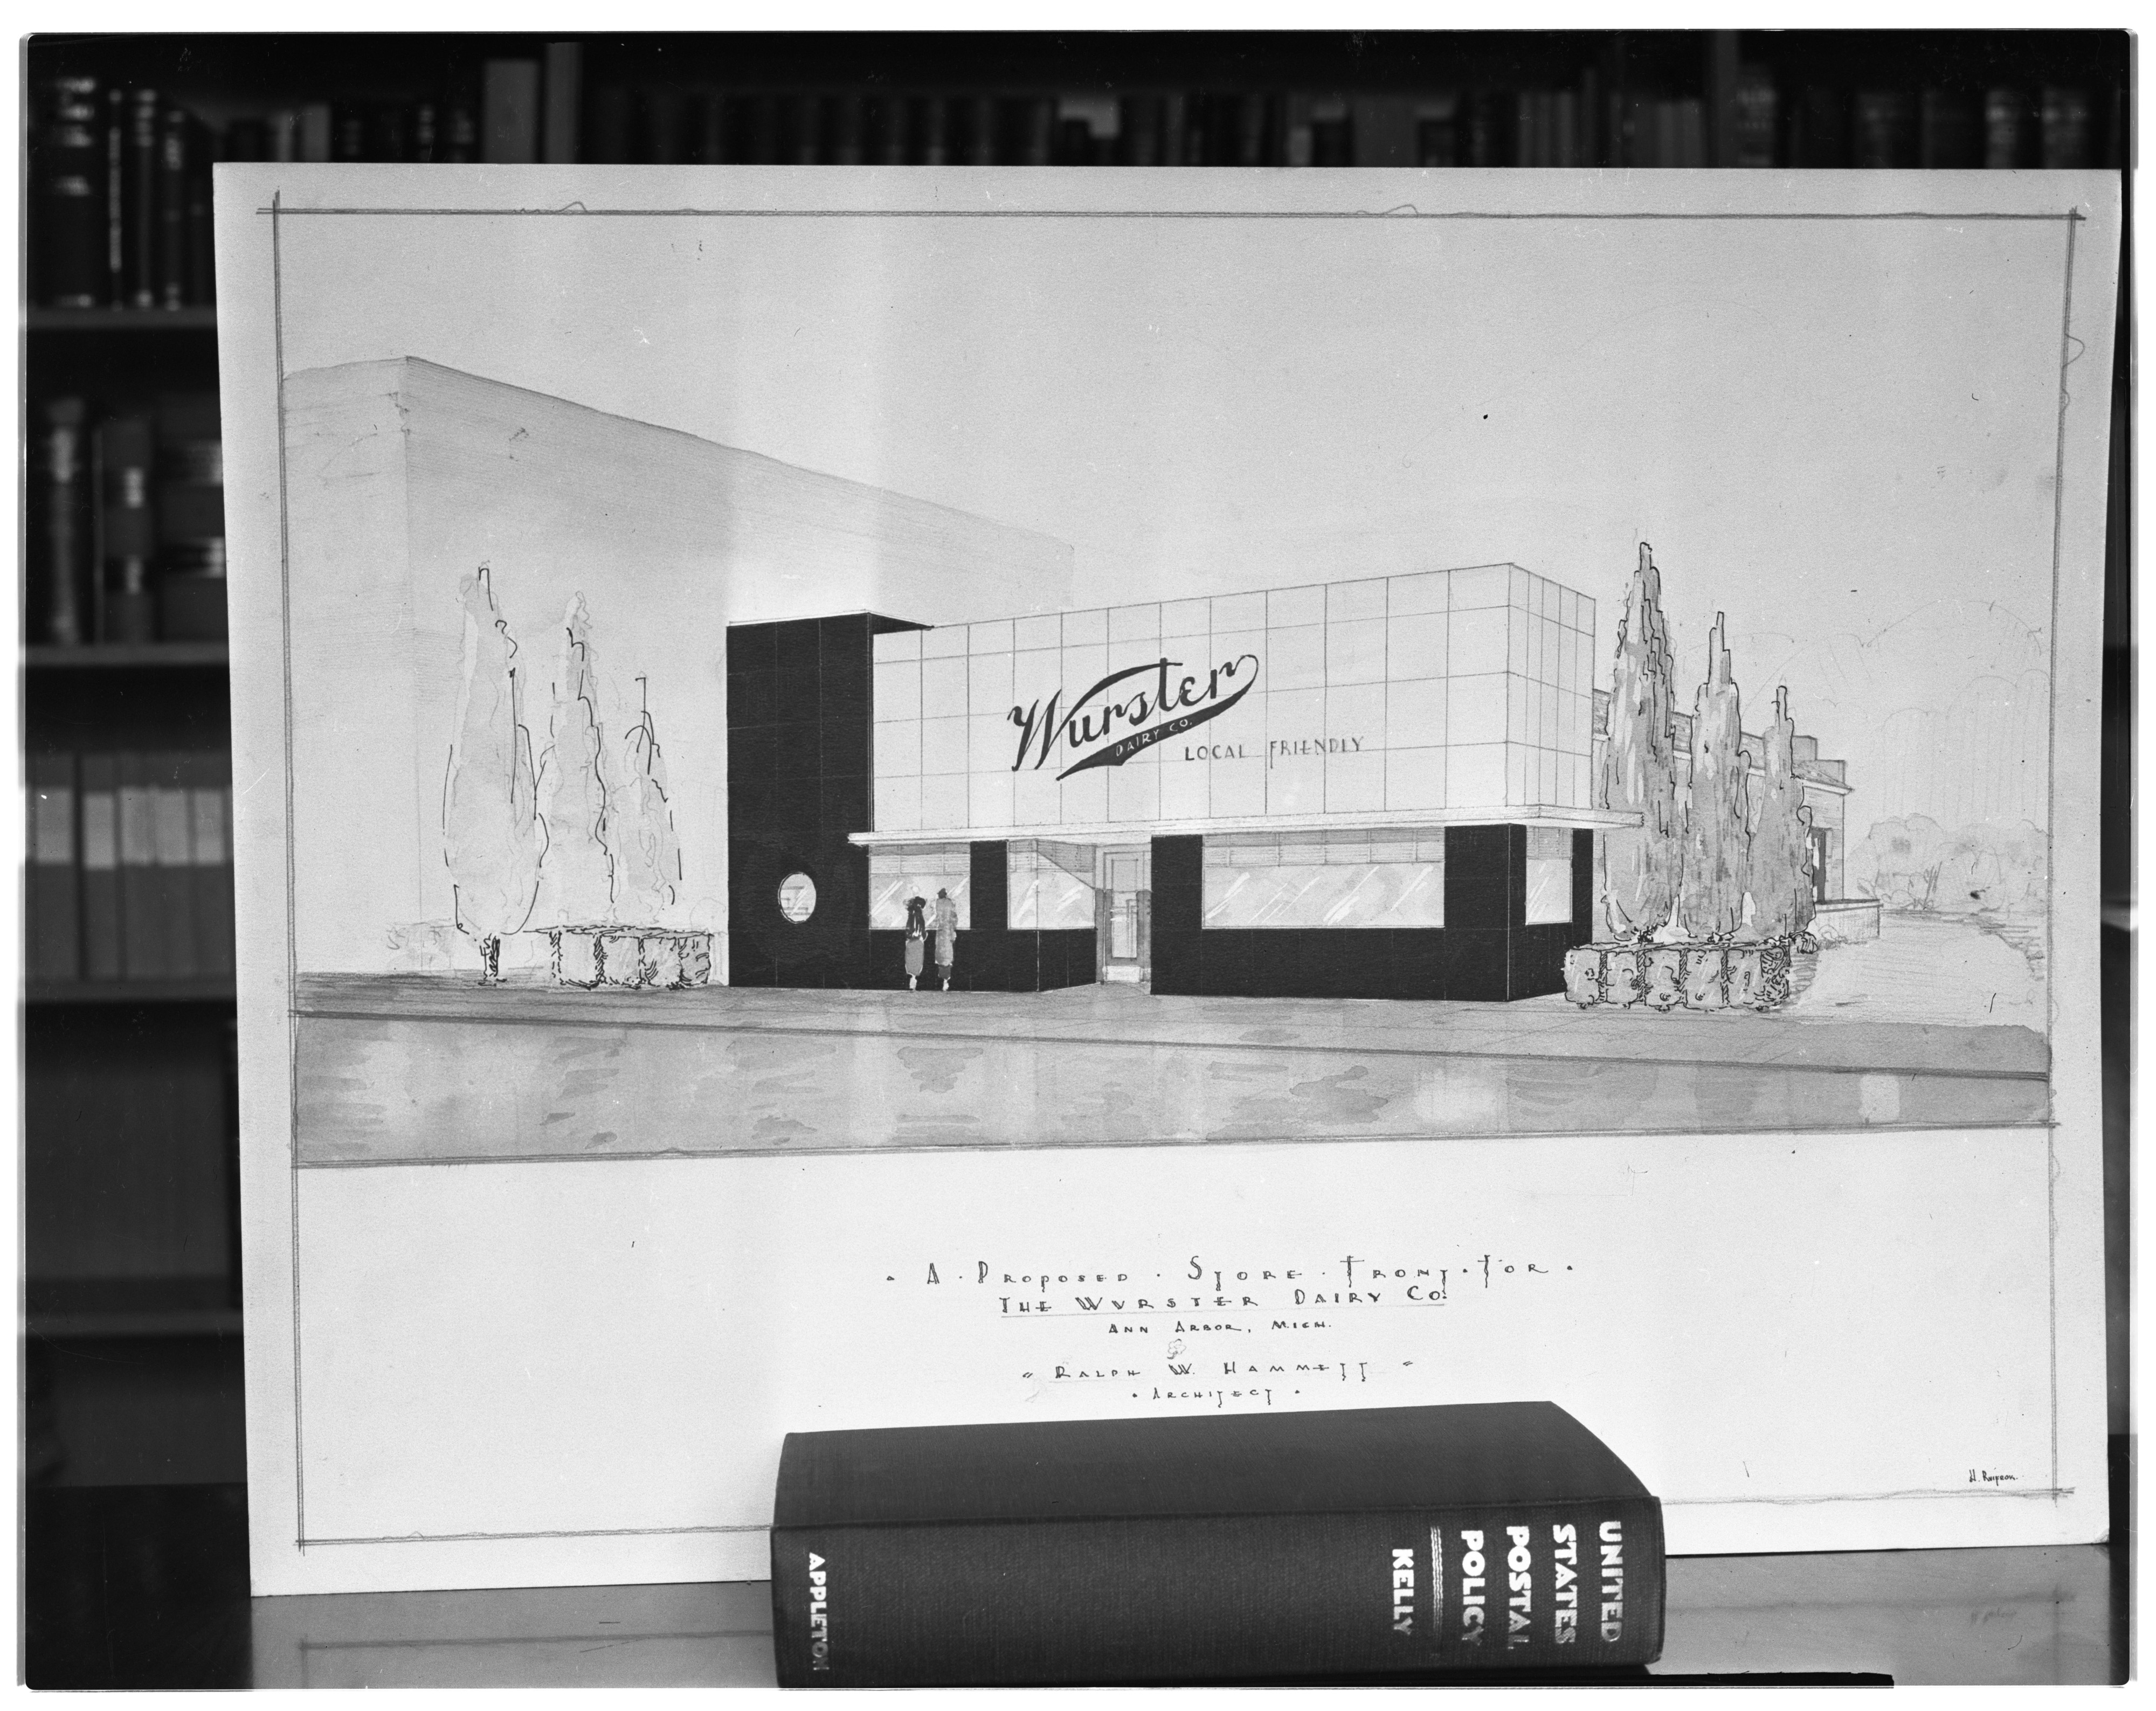 Drawing of Planned New Wurster Dairy Co Building, 1936 image